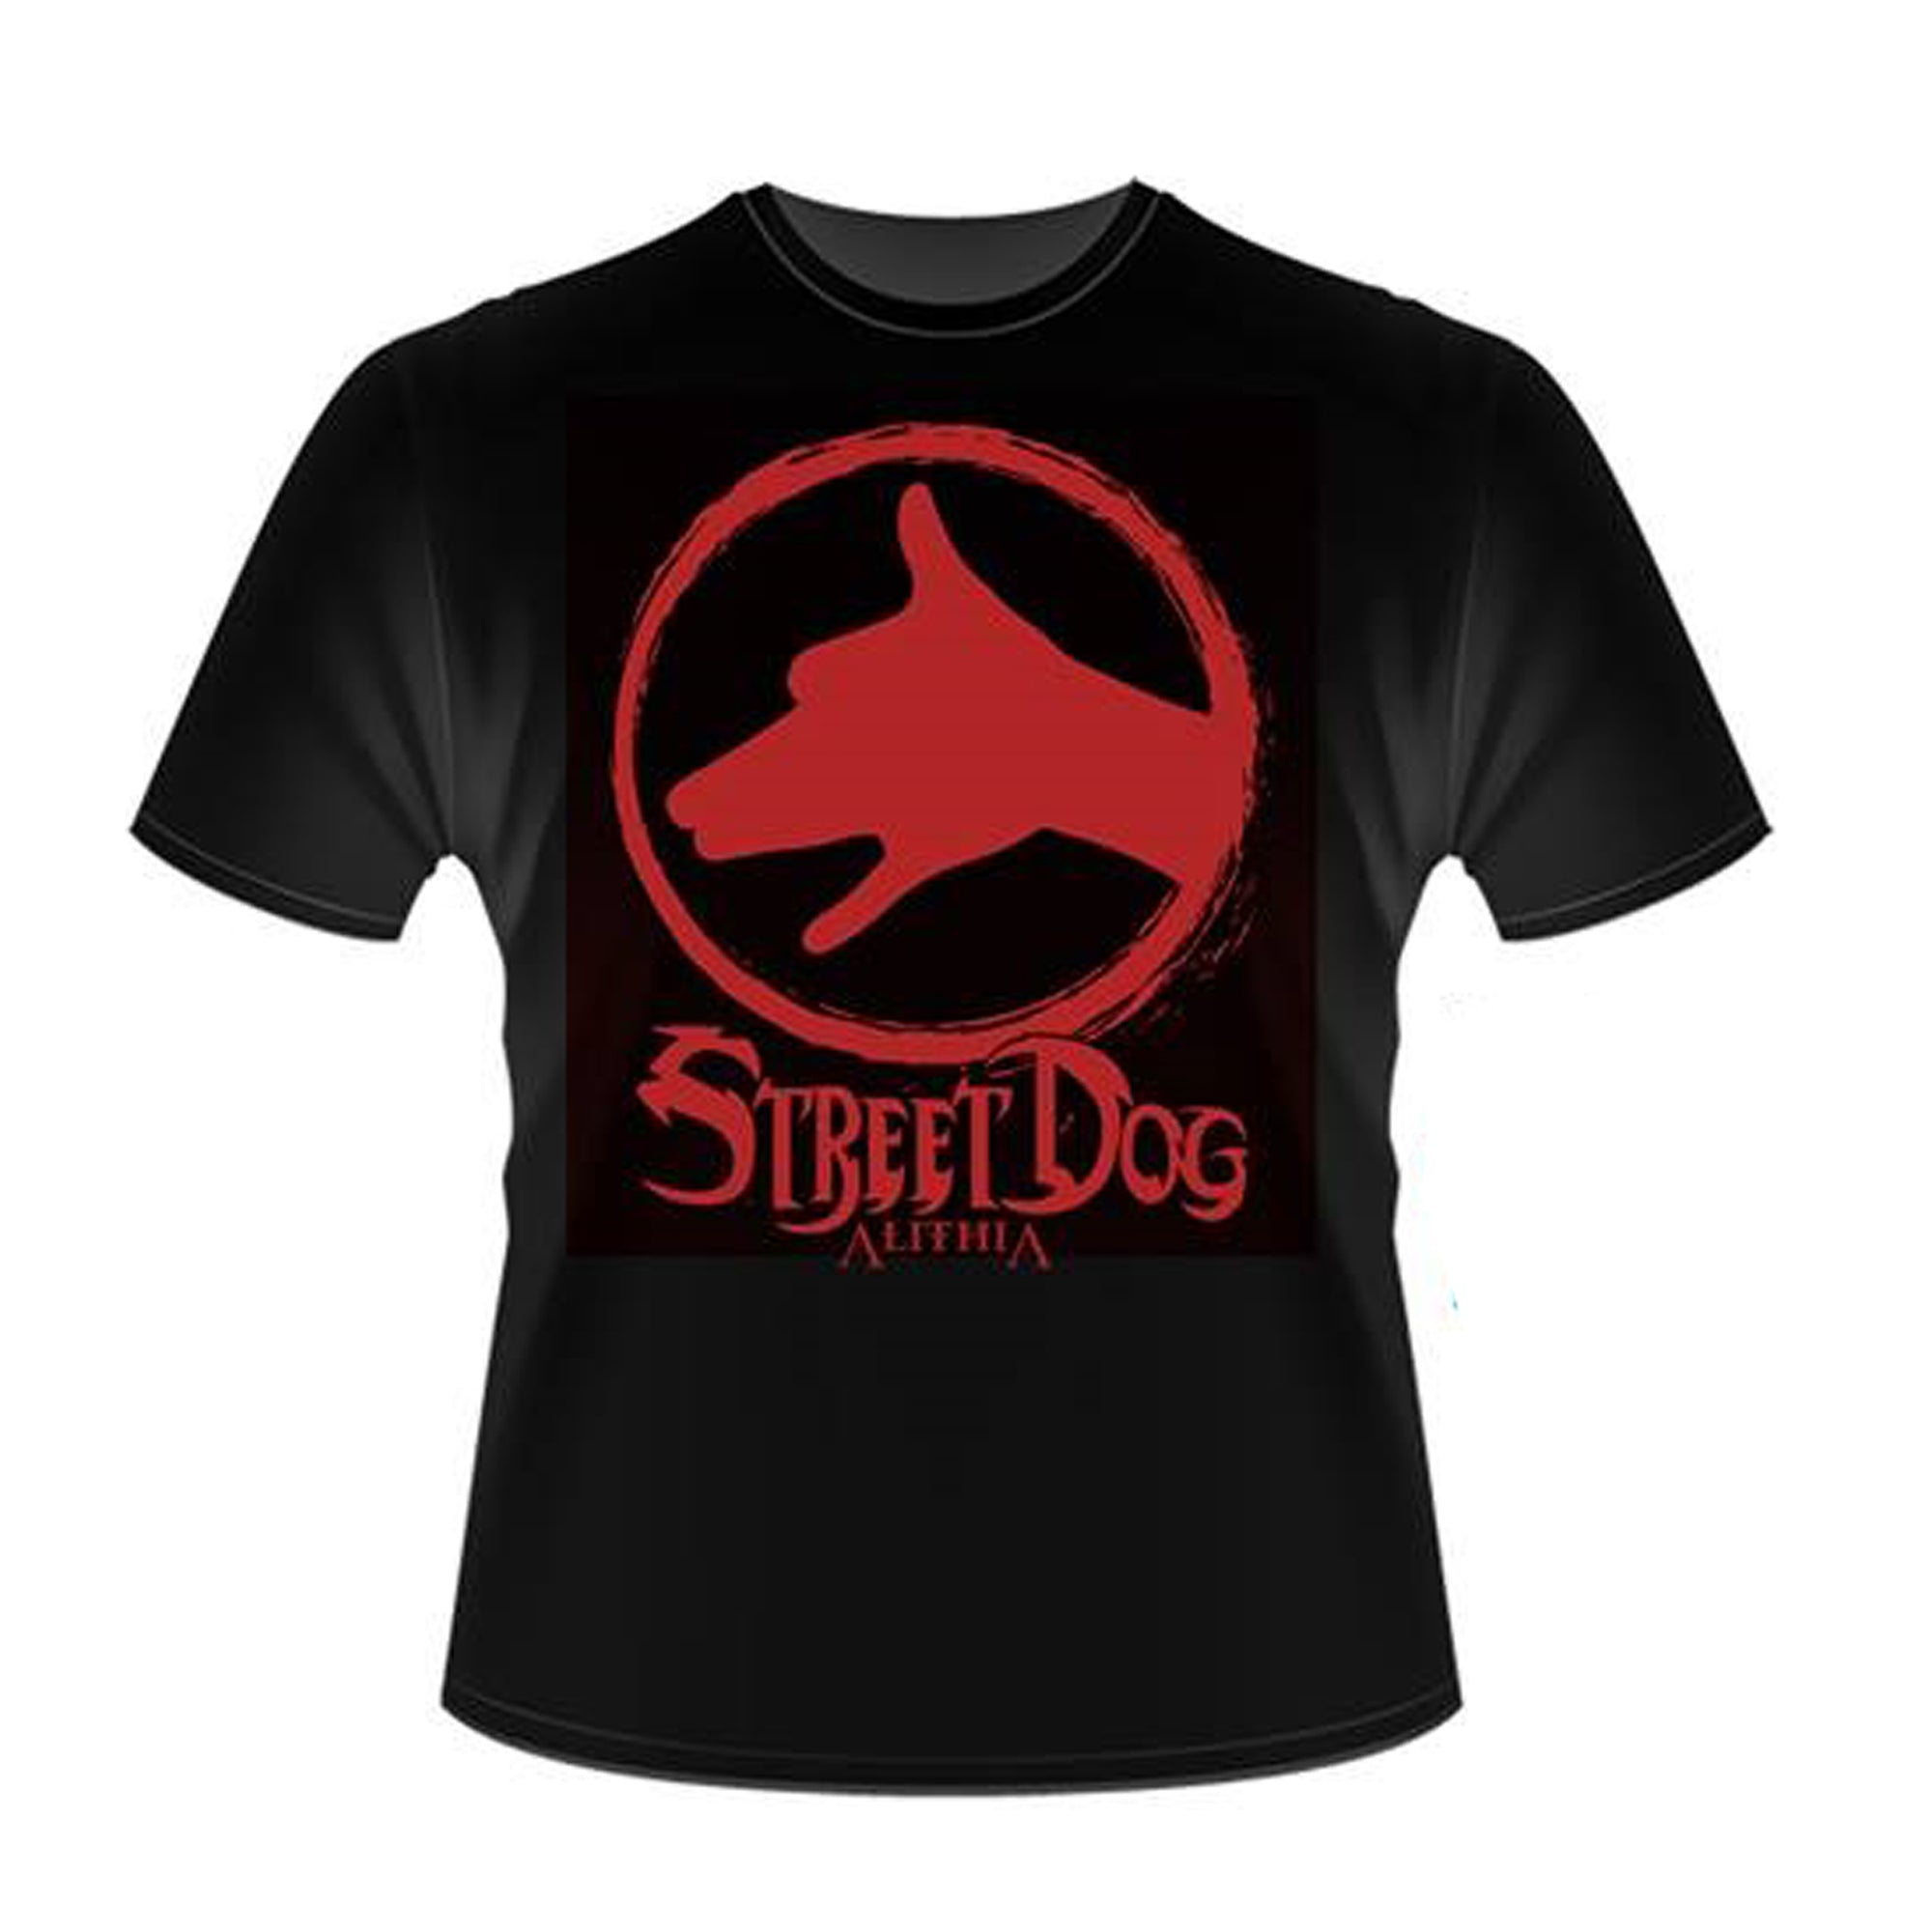 ALITHIA // STREET DOG T-SHIRT - BLACK (WOMEN'S)